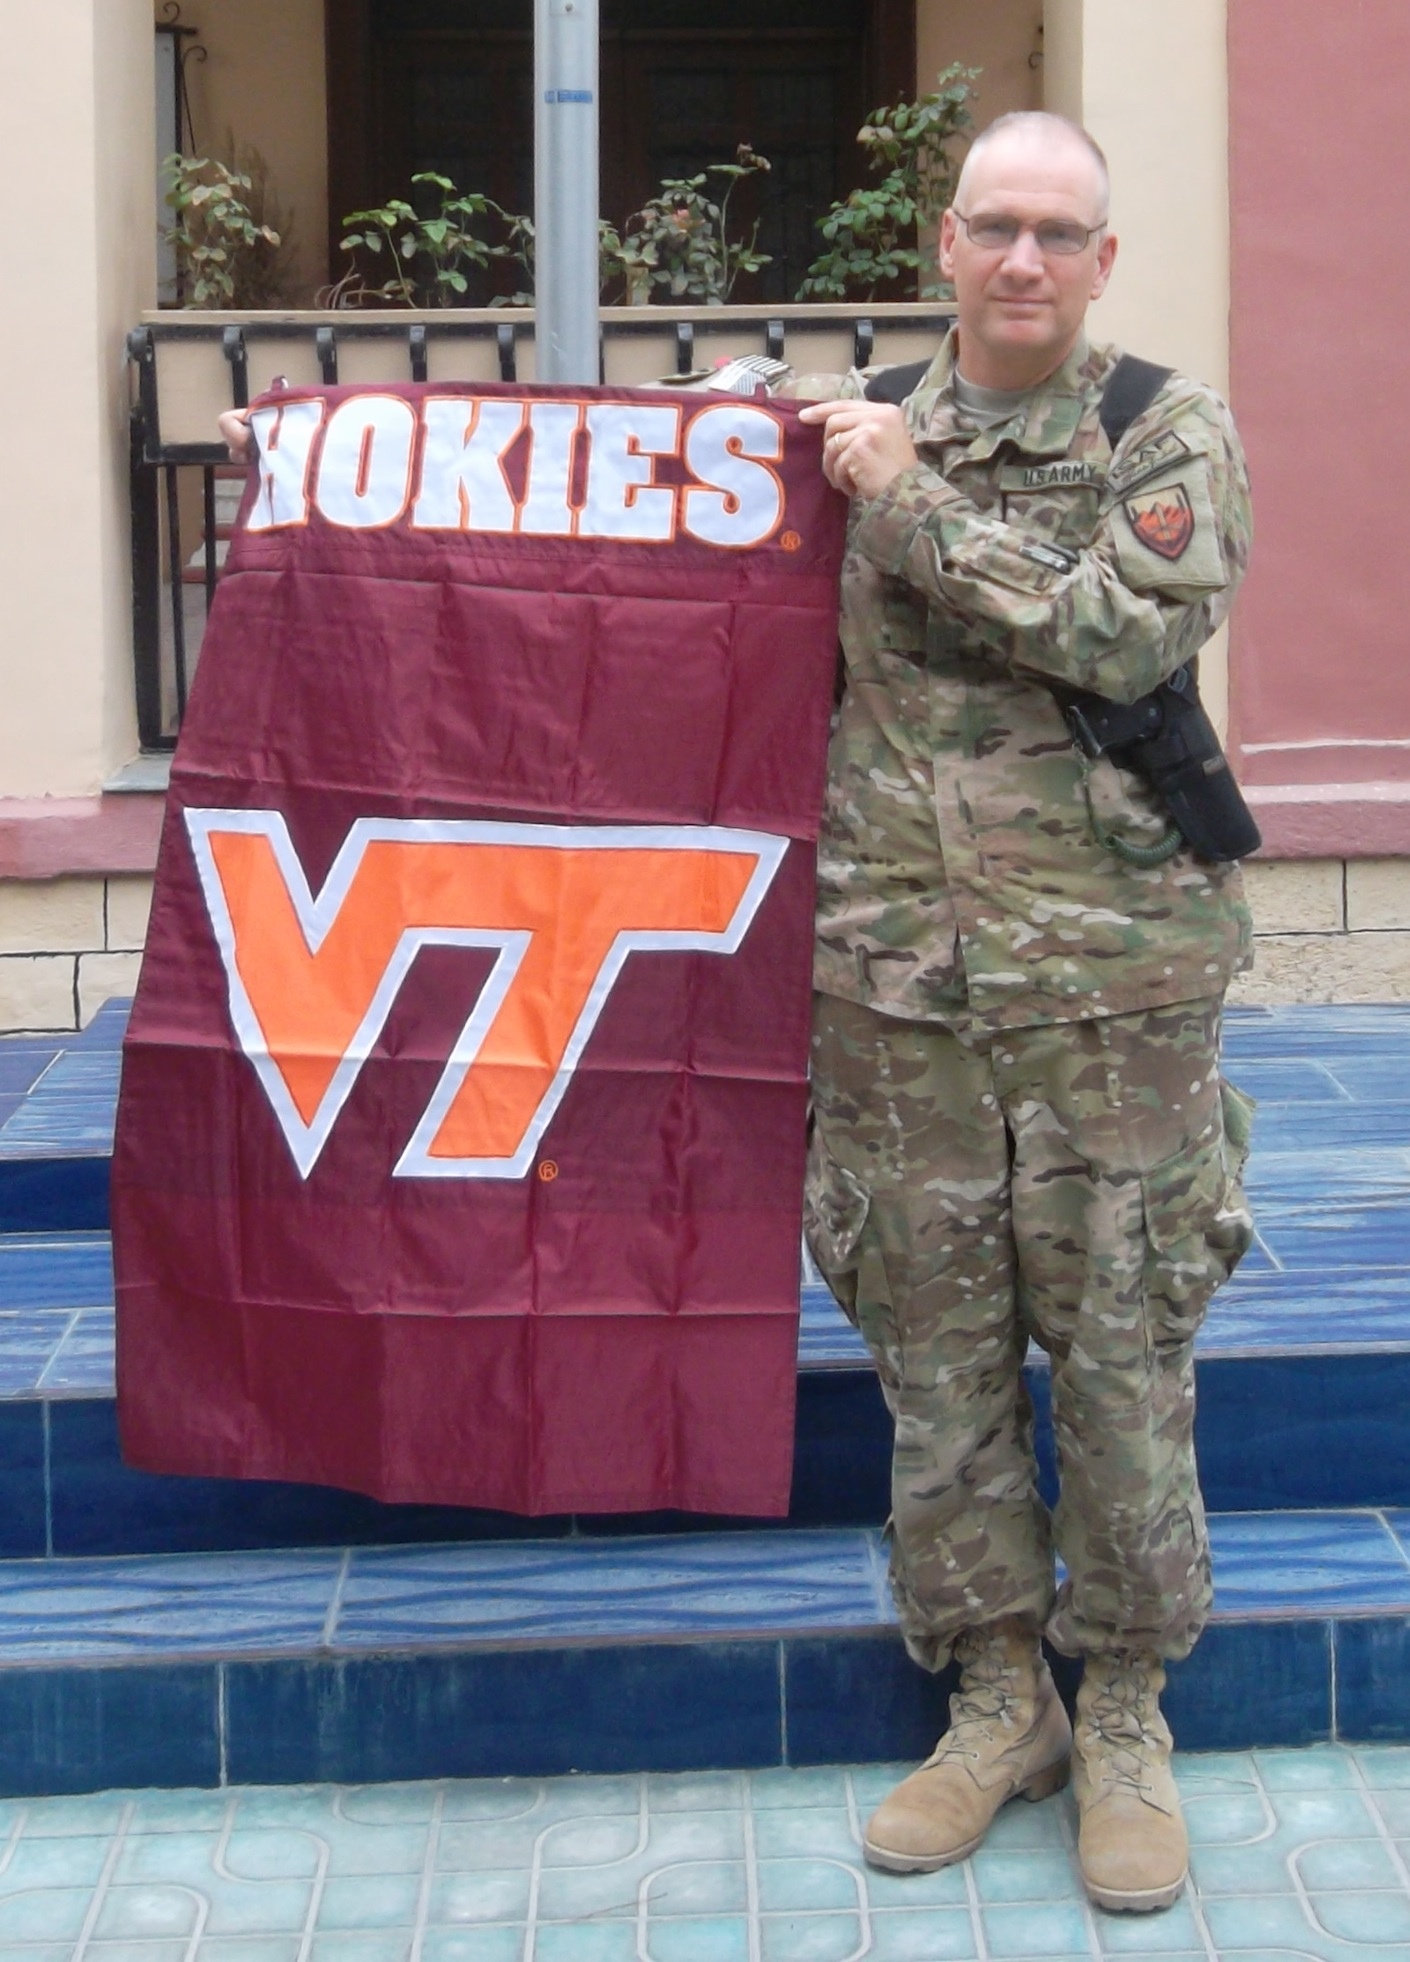 Col. Frank Huber, U.S. Army, Virginia Tech Corps of Cadets Class of 1985 on deployment.